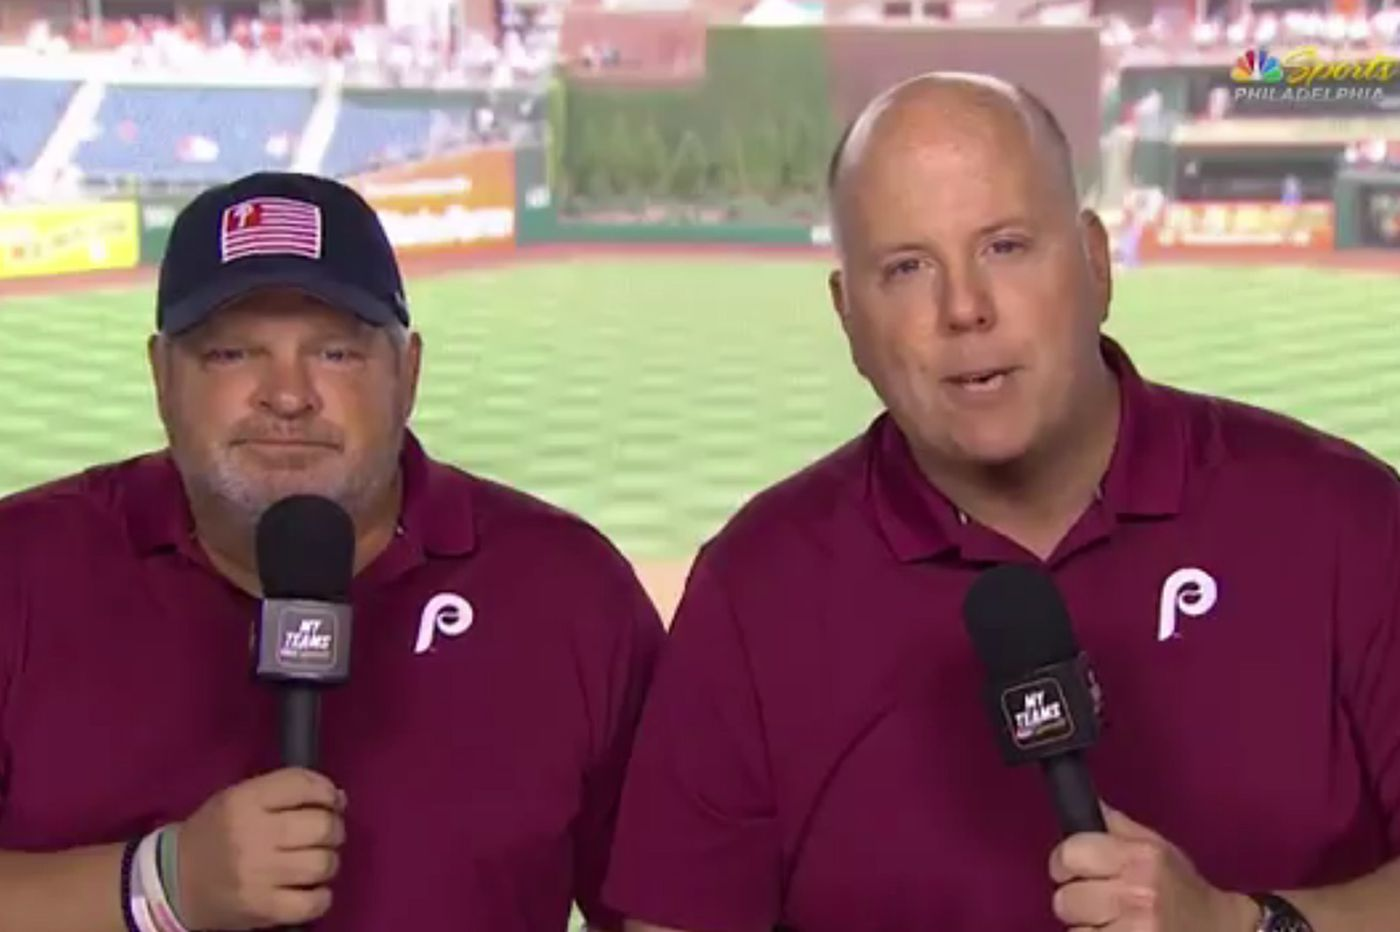 John Kruk curses on-air as Phillies continue to struggle: 'Did I say that out loud?'